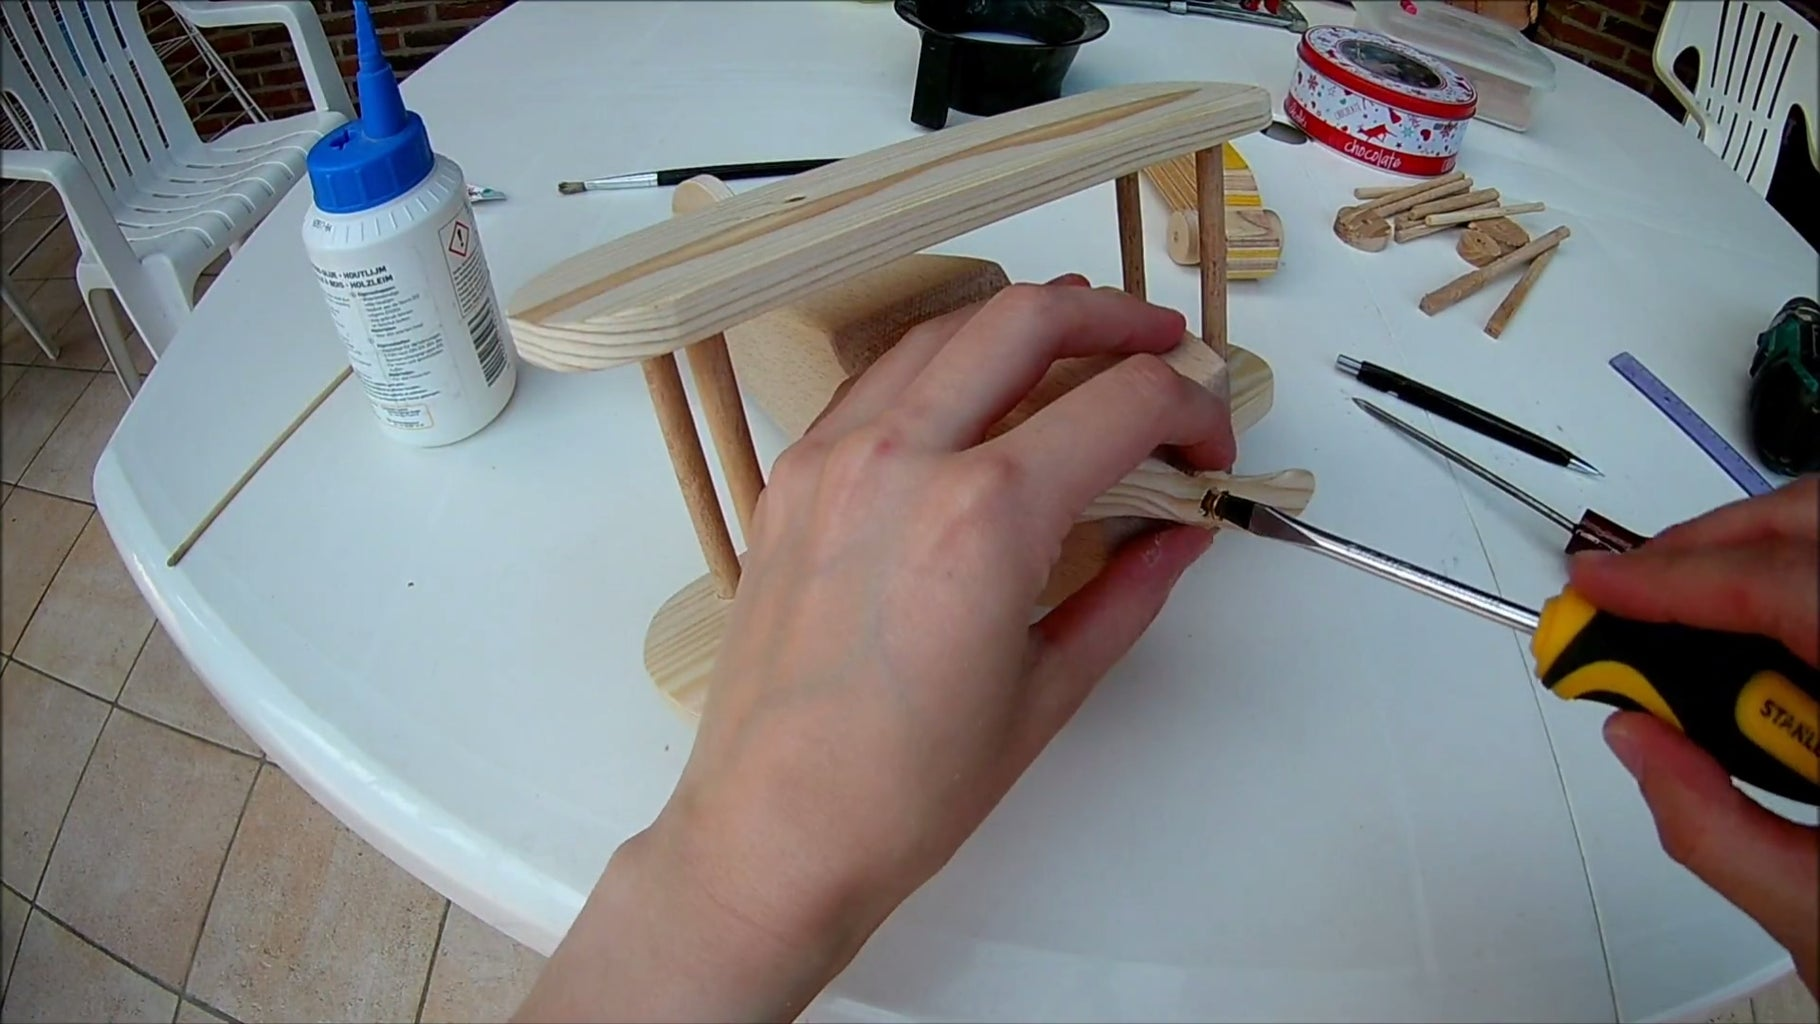 Step 4: the Assembly